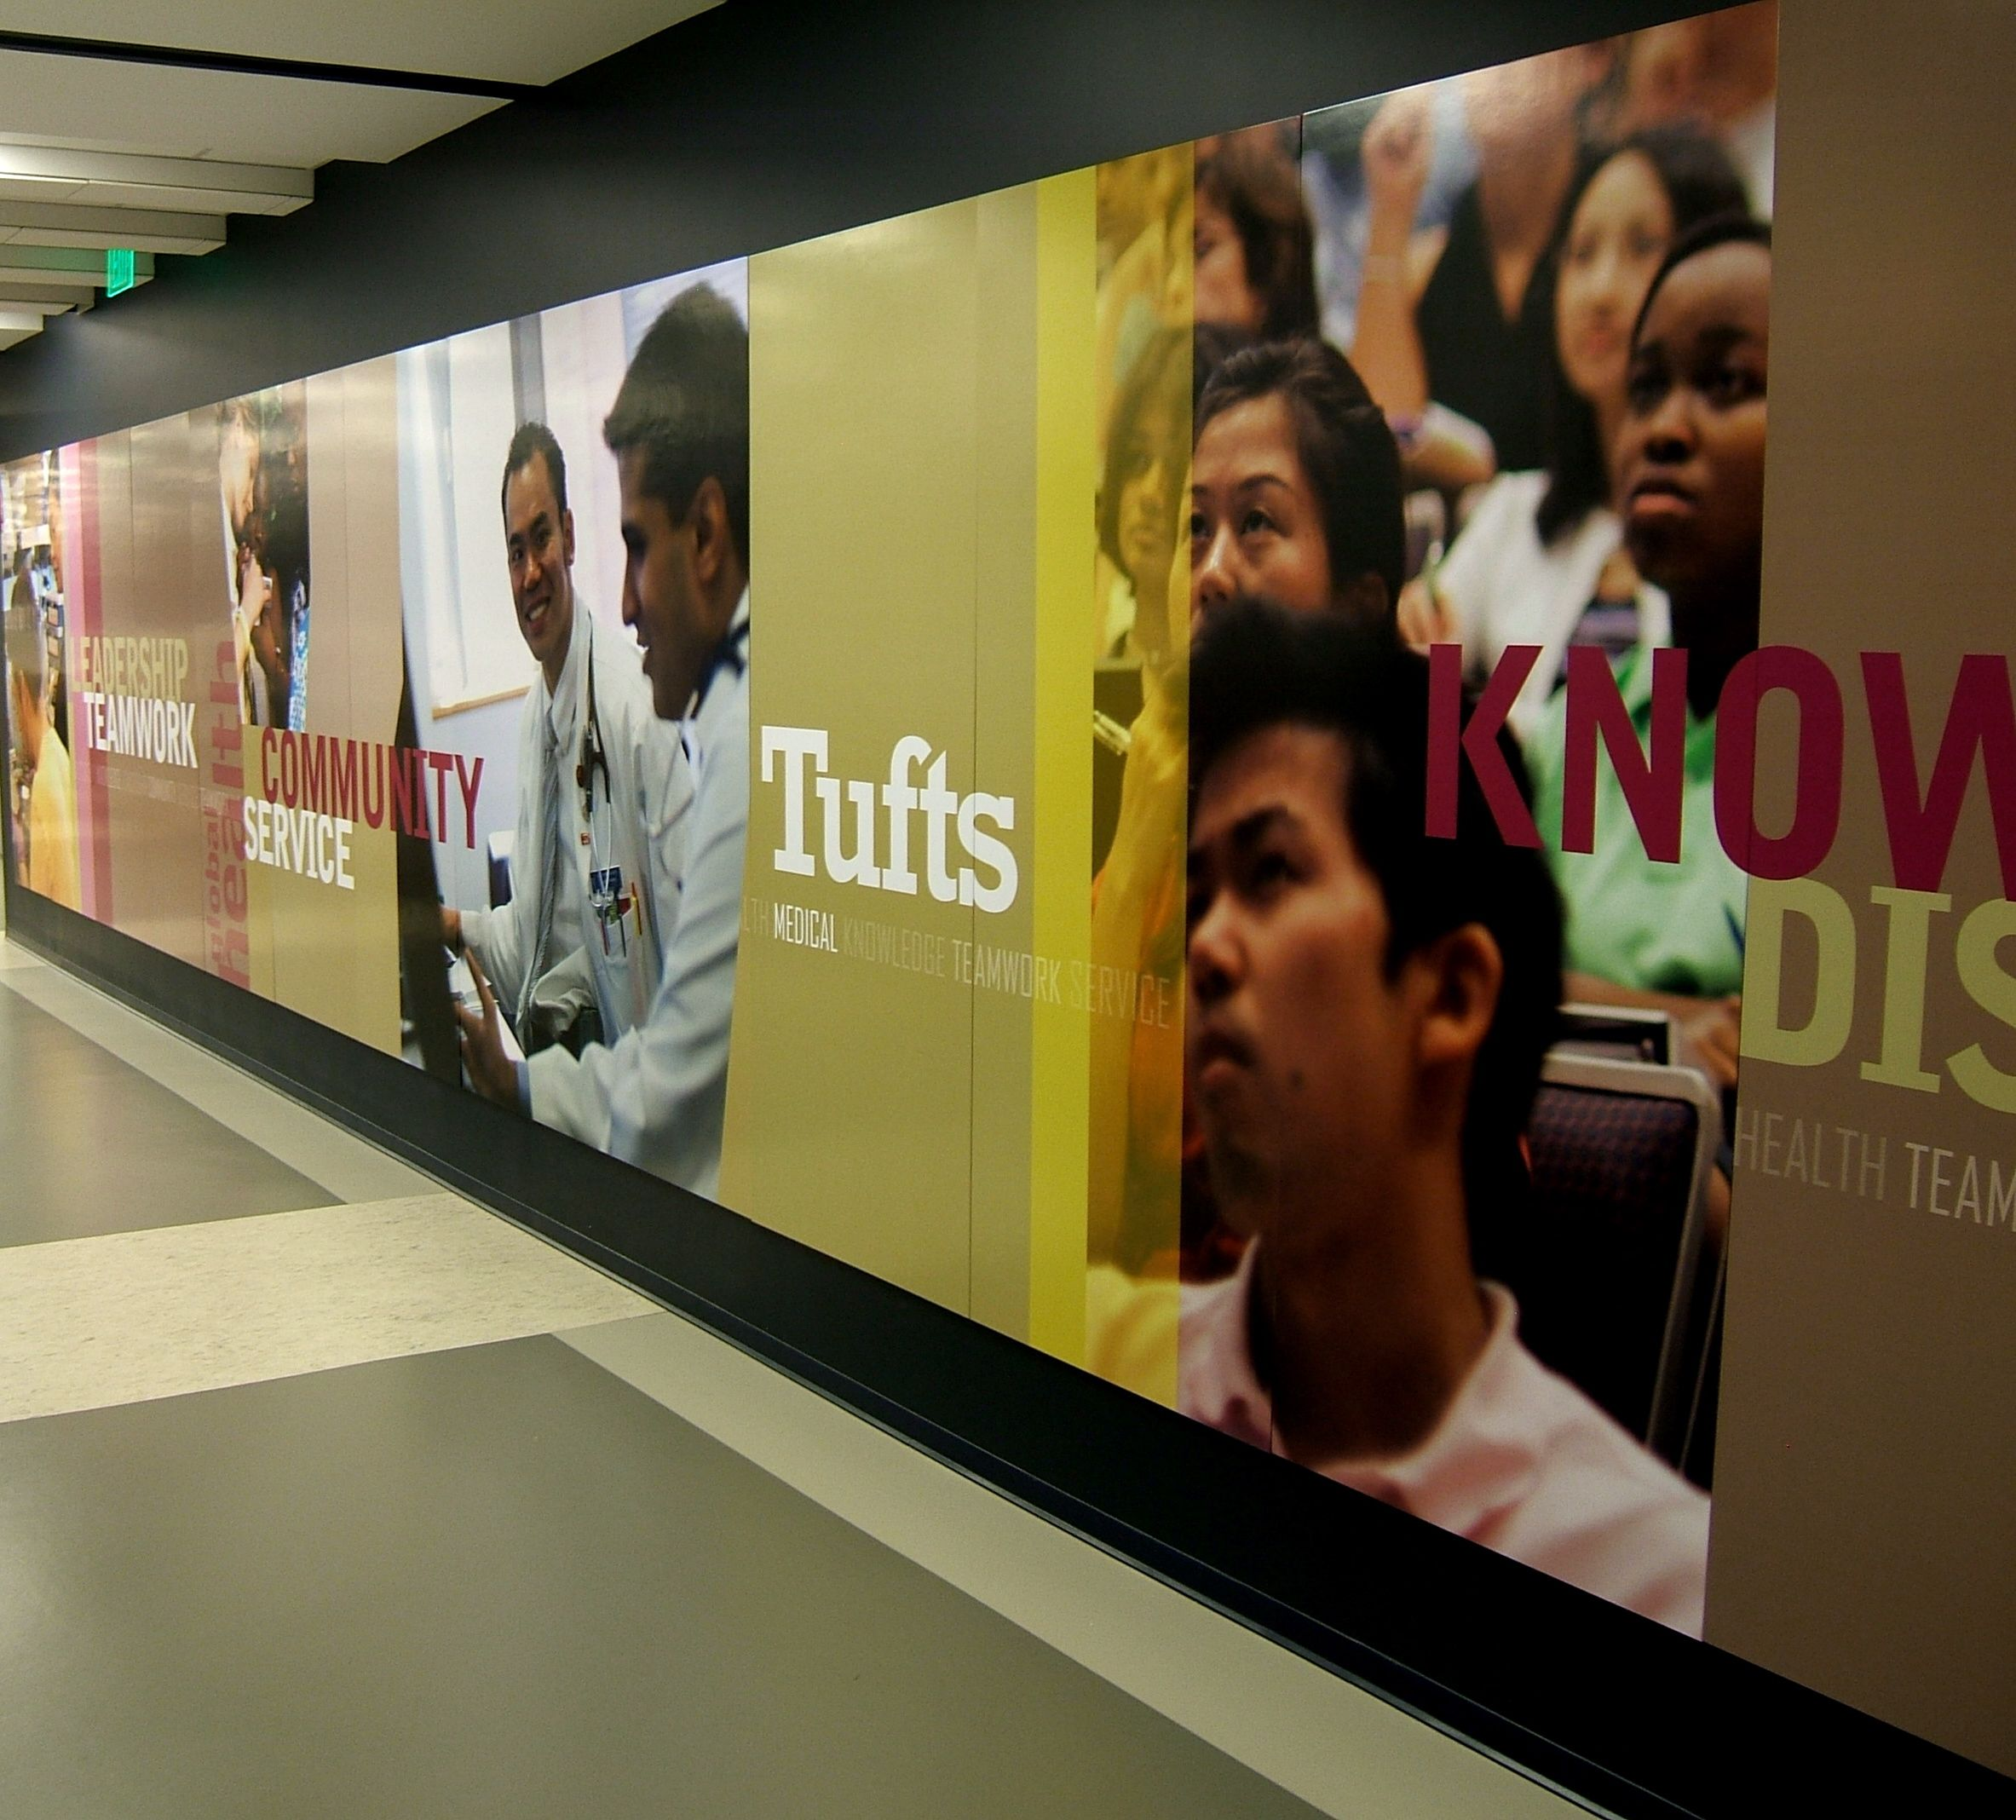 Tufts Wall Mural | office | Pinterest | Wall murals, Empty wall and ...